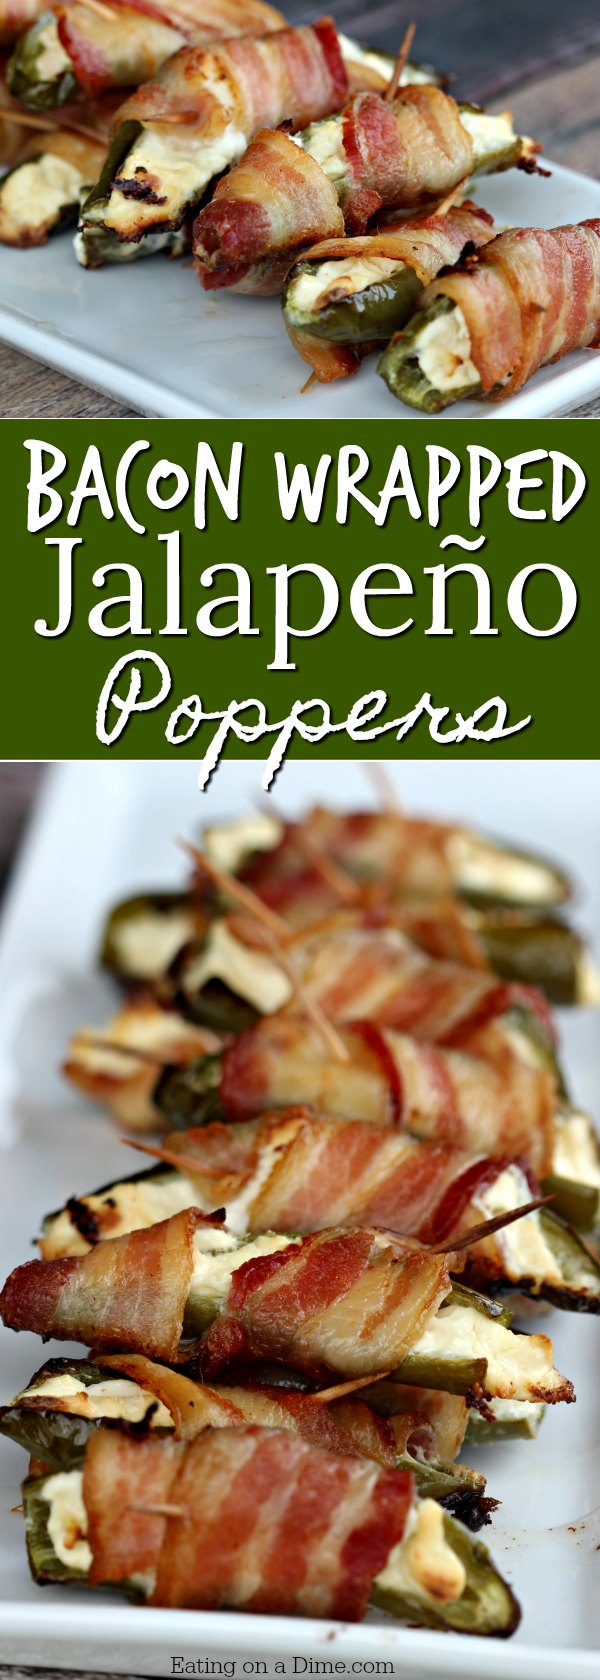 Easy appetizer recipe - This Bacon Wrapped Stuffed Jalapeño Poppers recipe is amazing. Only 3 ingredients to make the best bacon wrapped jalapeño poppers!